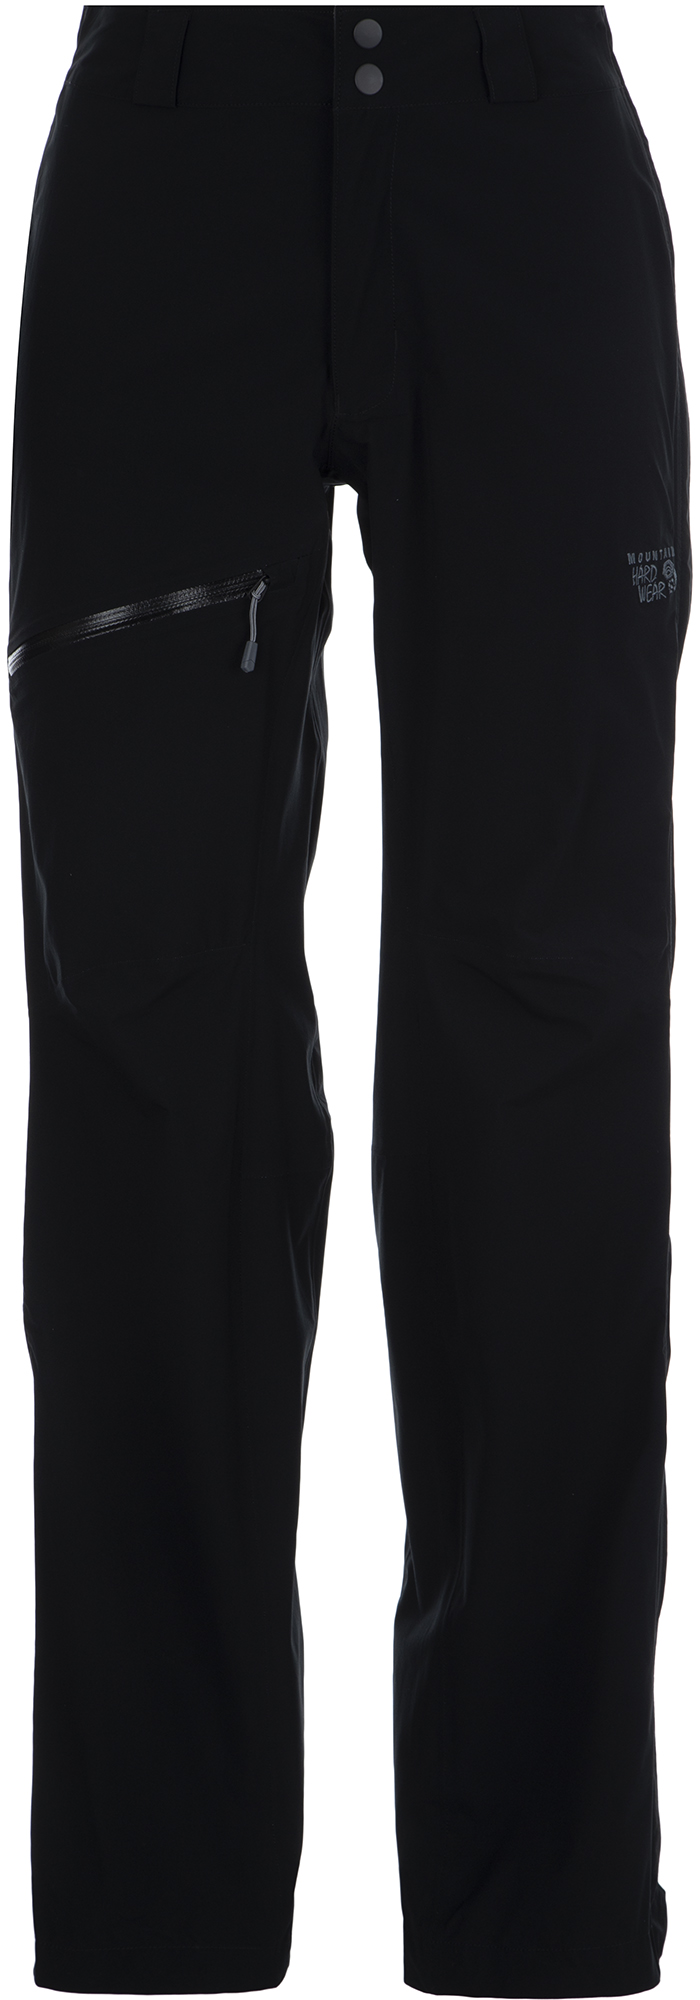 Mountain Hardwear Брюки женские Mountain Hardwear Stretch Ozonic, размер 50 цена